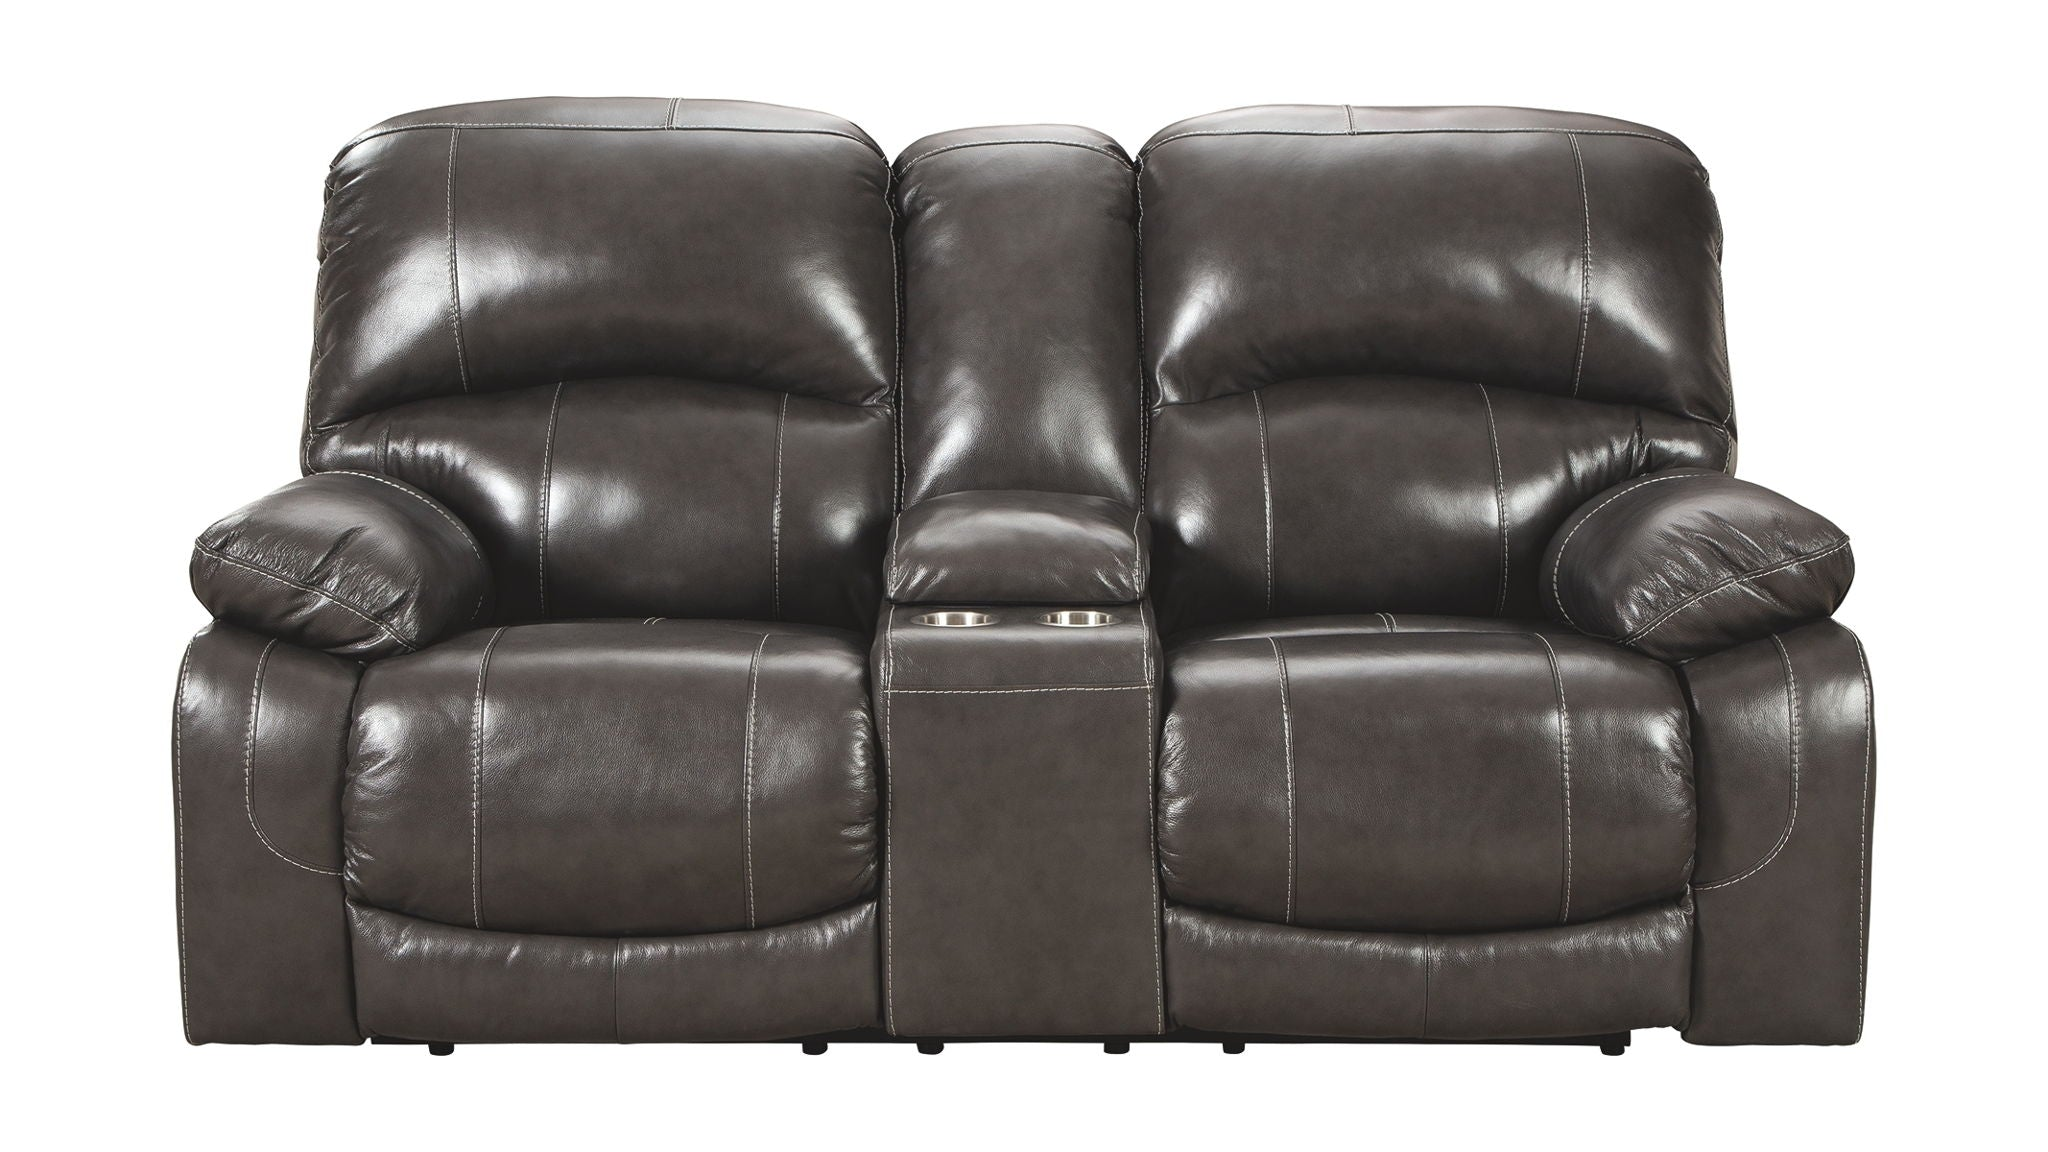 Hallstrung Power Reclining Loveseat with Console | Calgary's Furniture Store